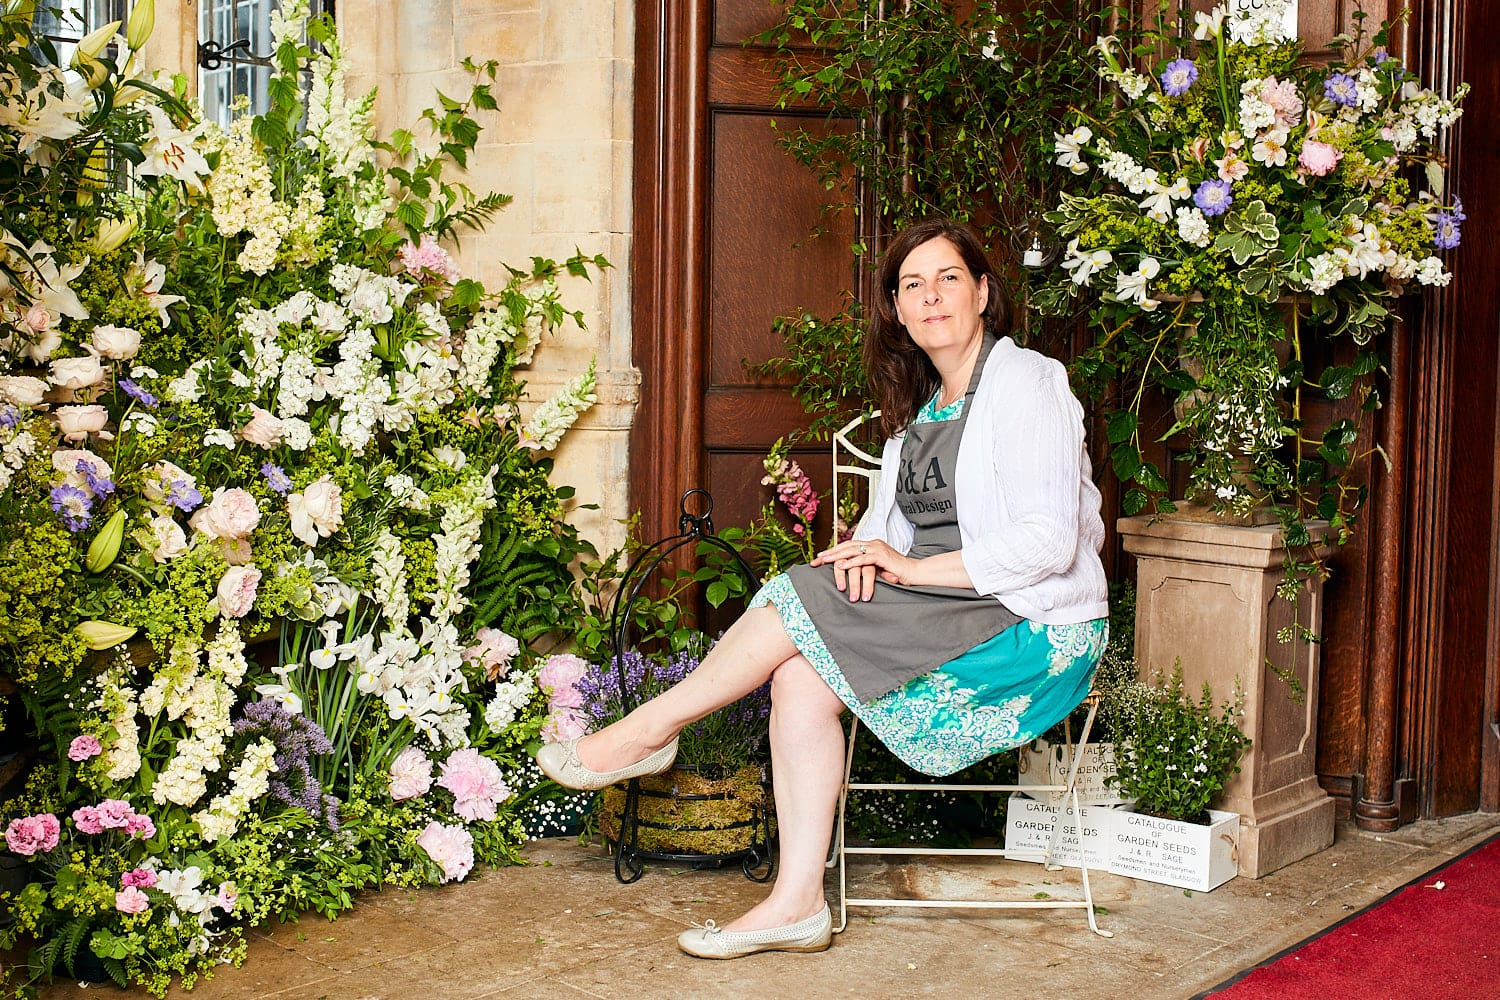 Shirley Dee from S&A Floral Design sitting in front of her creation at The Petwood Hotel Woodhall Spa